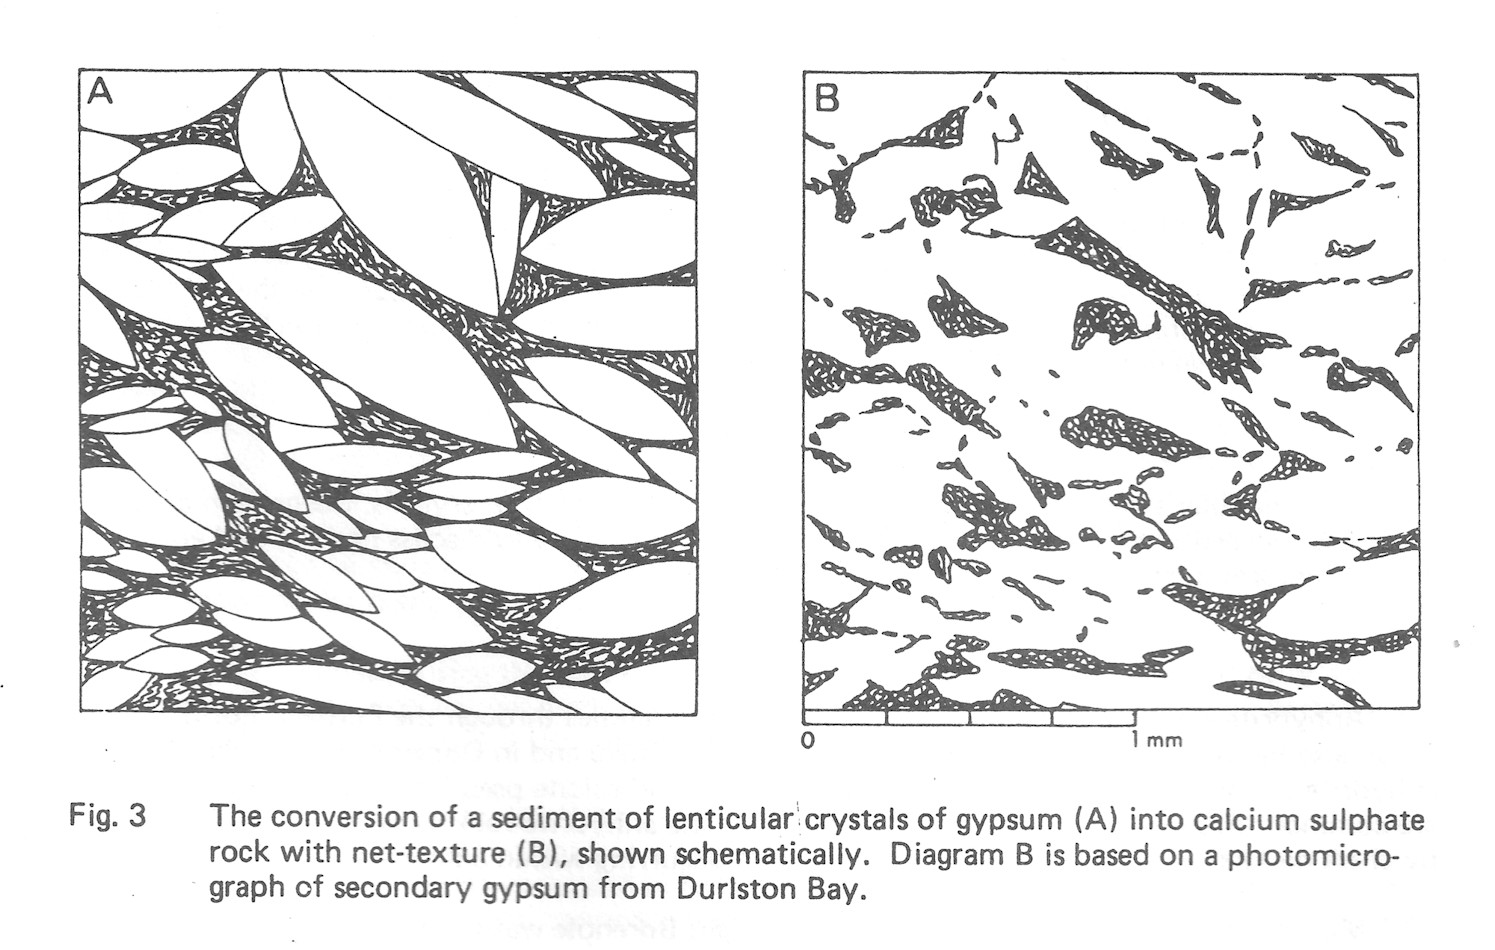 The conversion of a sediment of lenticular crystals of gypsum (A) into calcium sulphate rock with net-texture (B) shown schematically. Diagram B is based on a photomicrograph of secondary gypsum from Durlston Bay